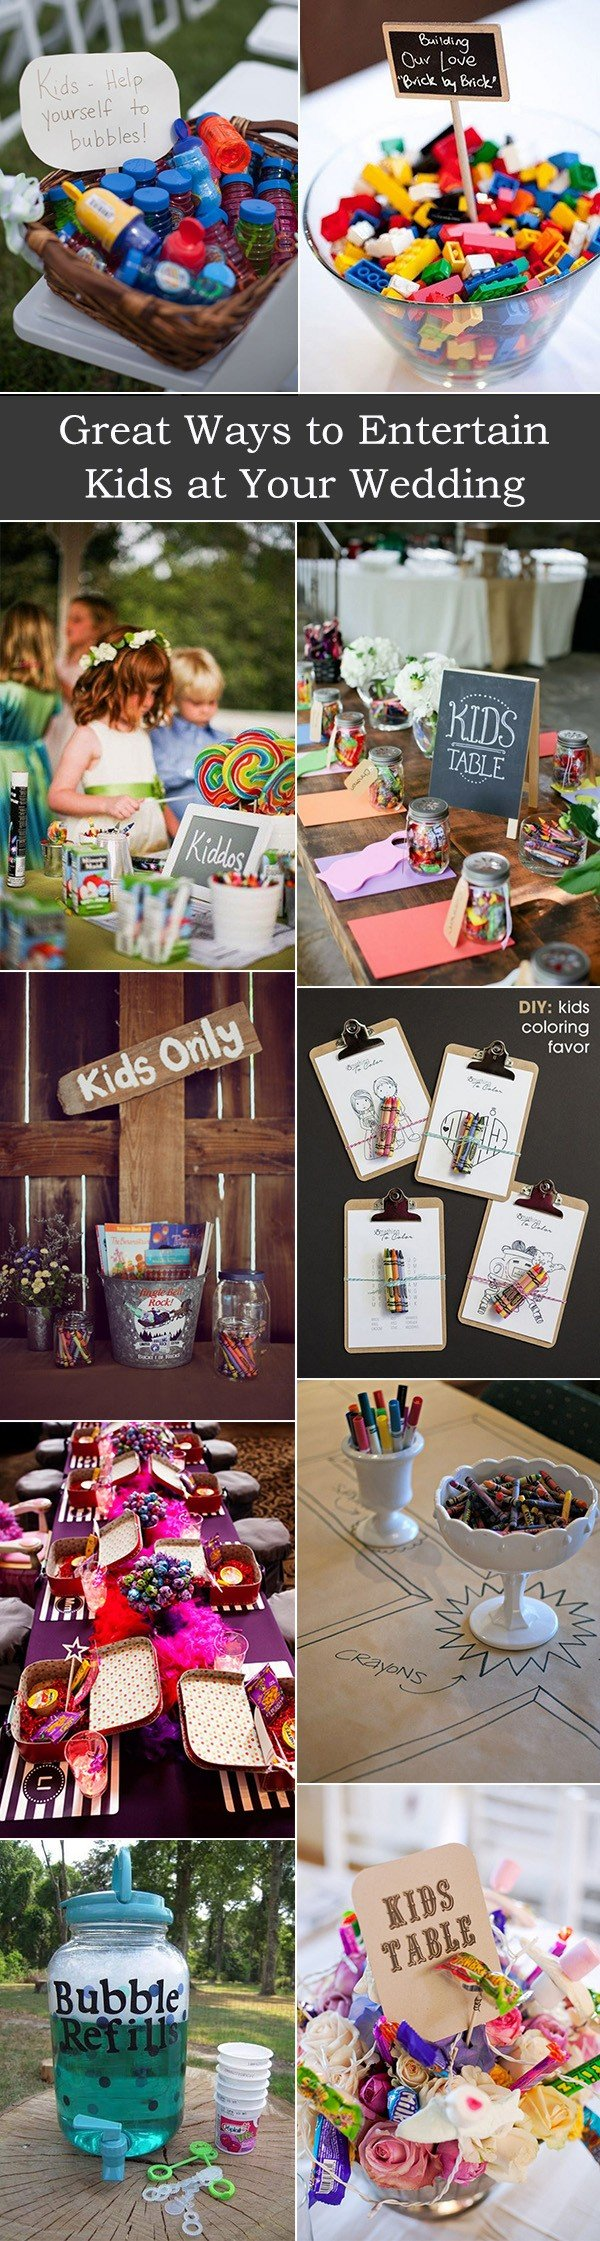 great ways to entertain kids at your wedding day